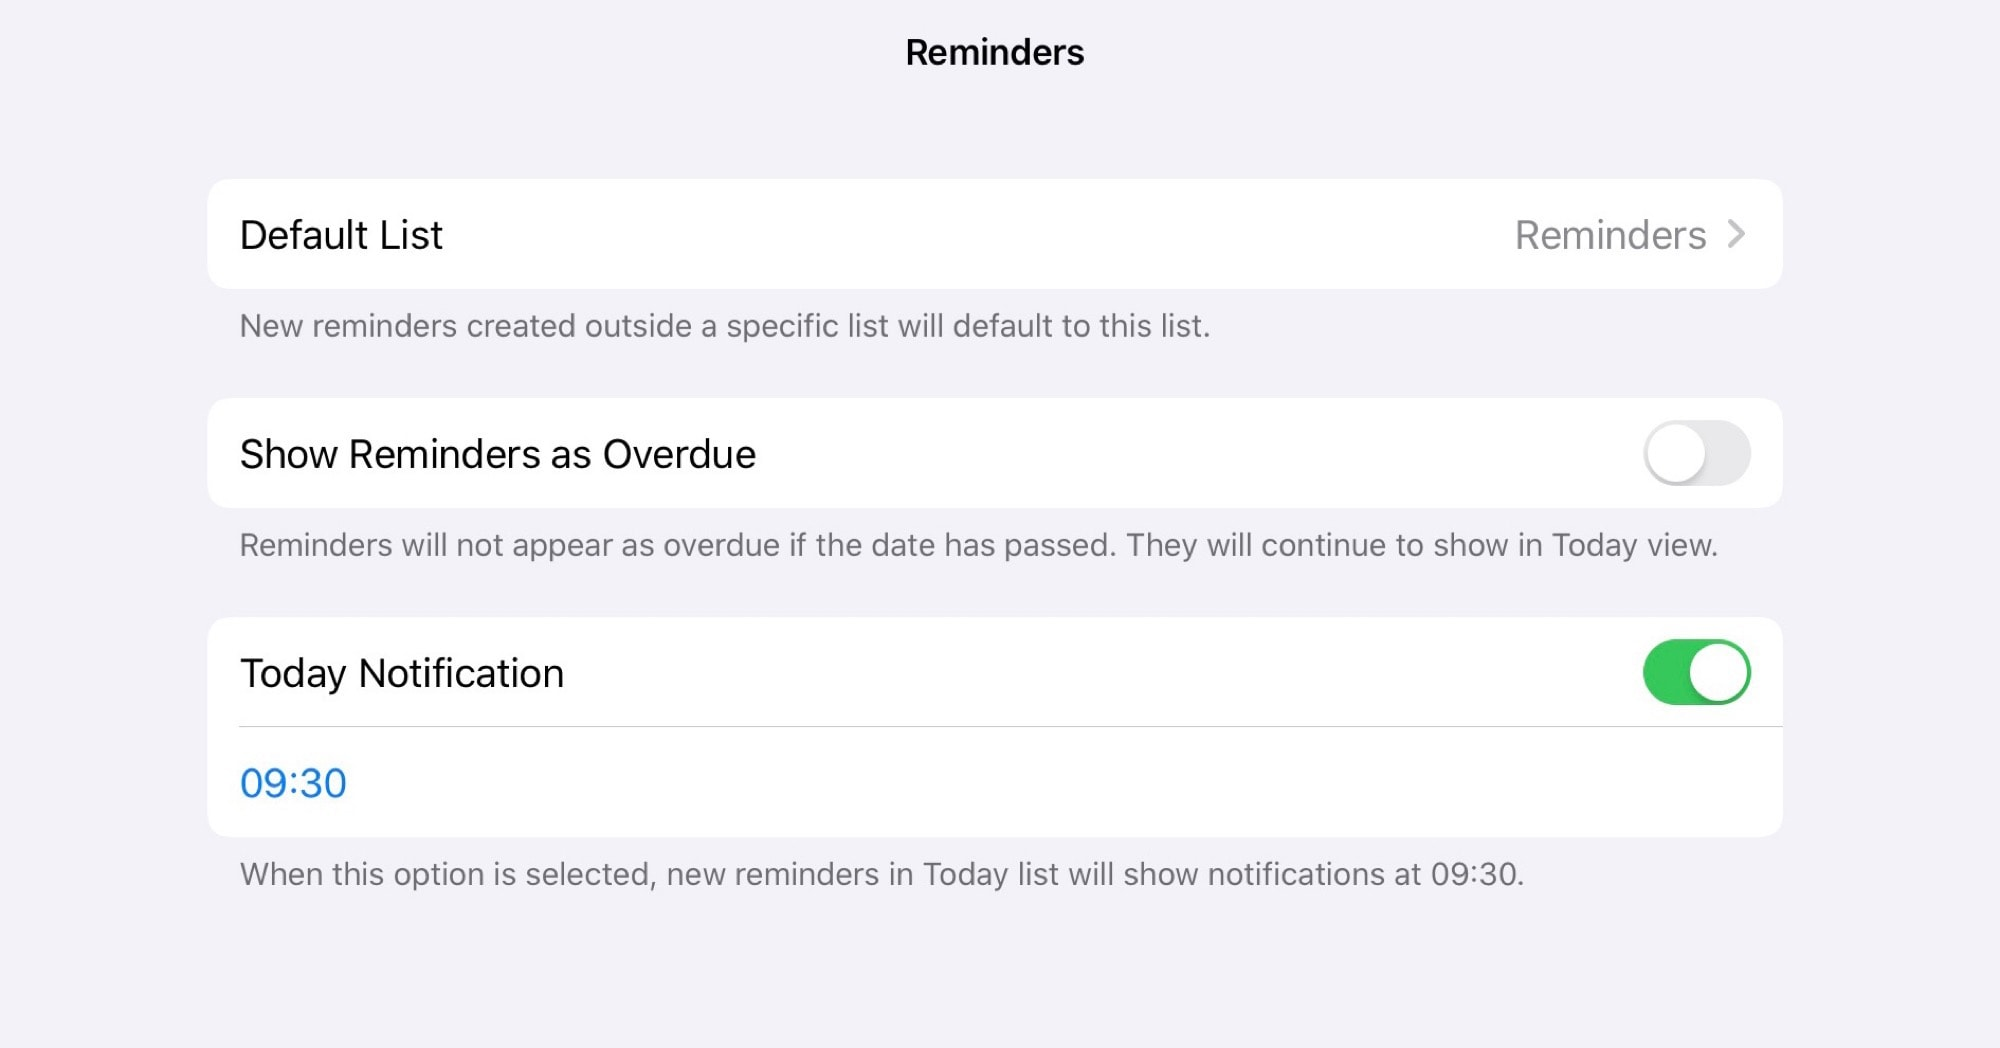 The Reminders app preference settings in iOS 13. That's more like it.